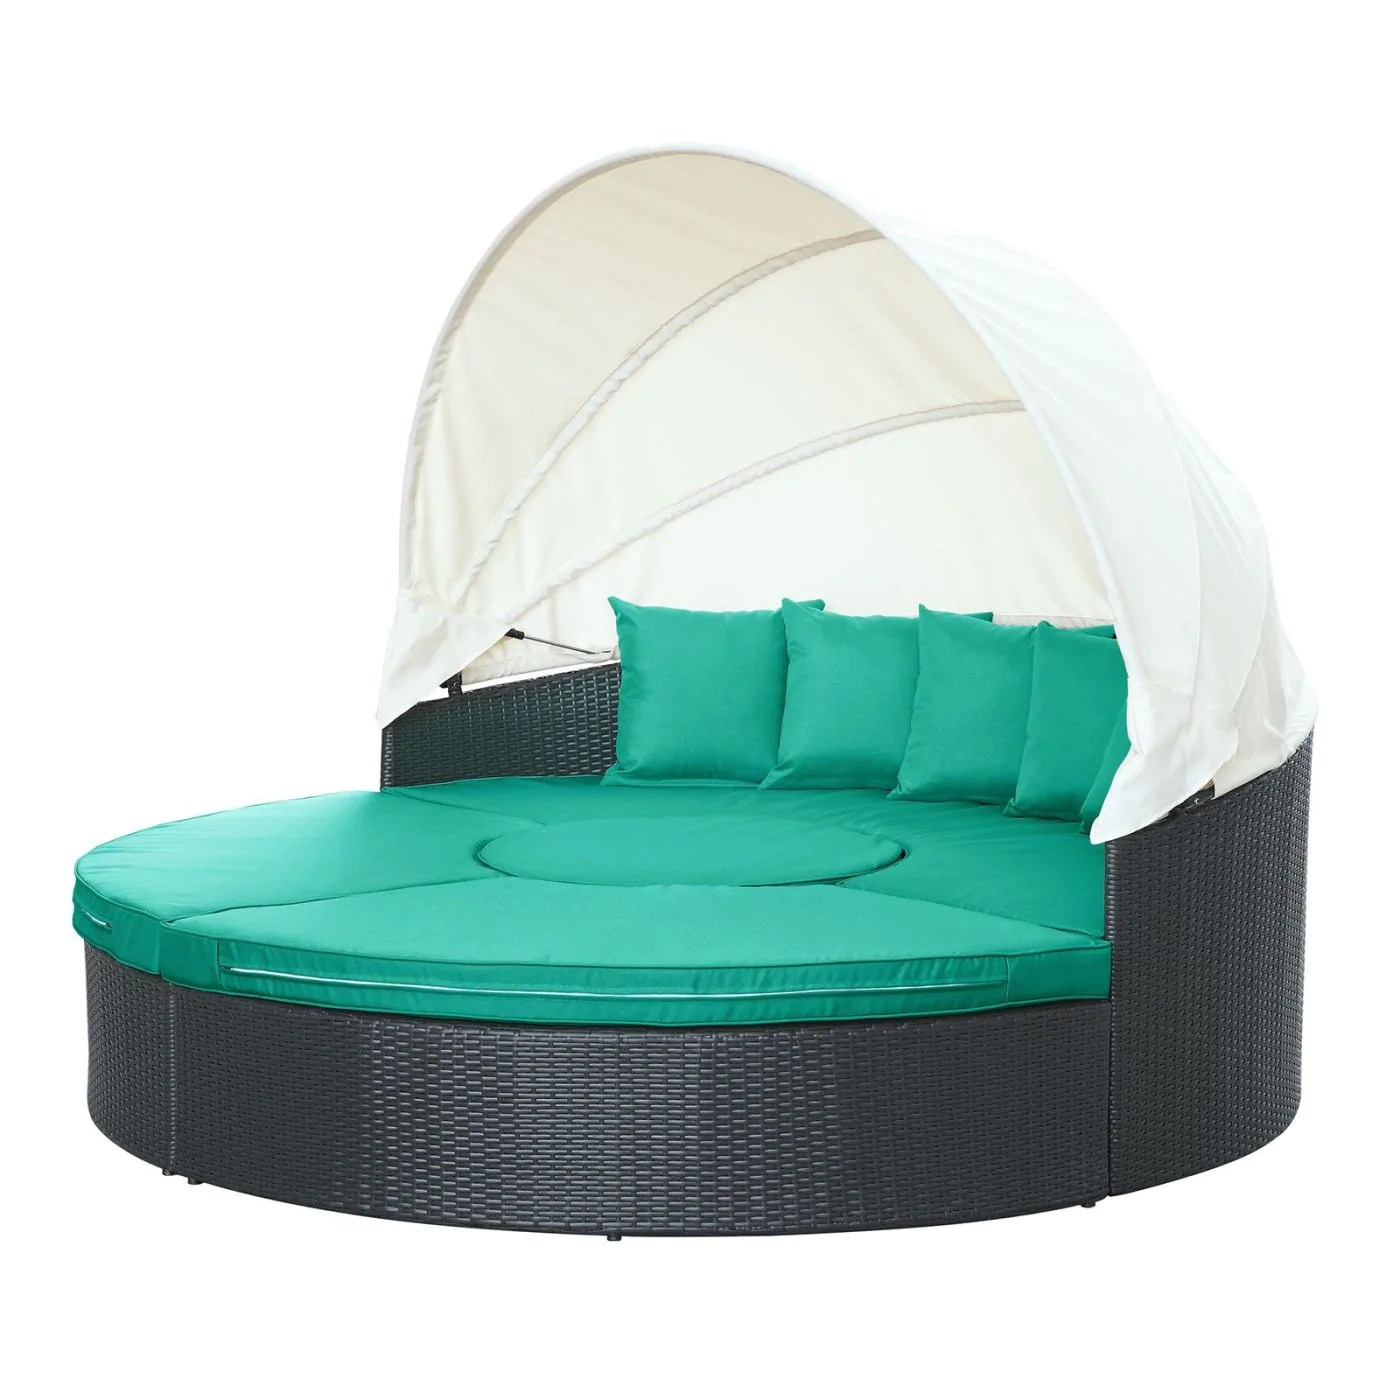 Modway Quest Canopy Outdoor Patio Daybed at Contemporary